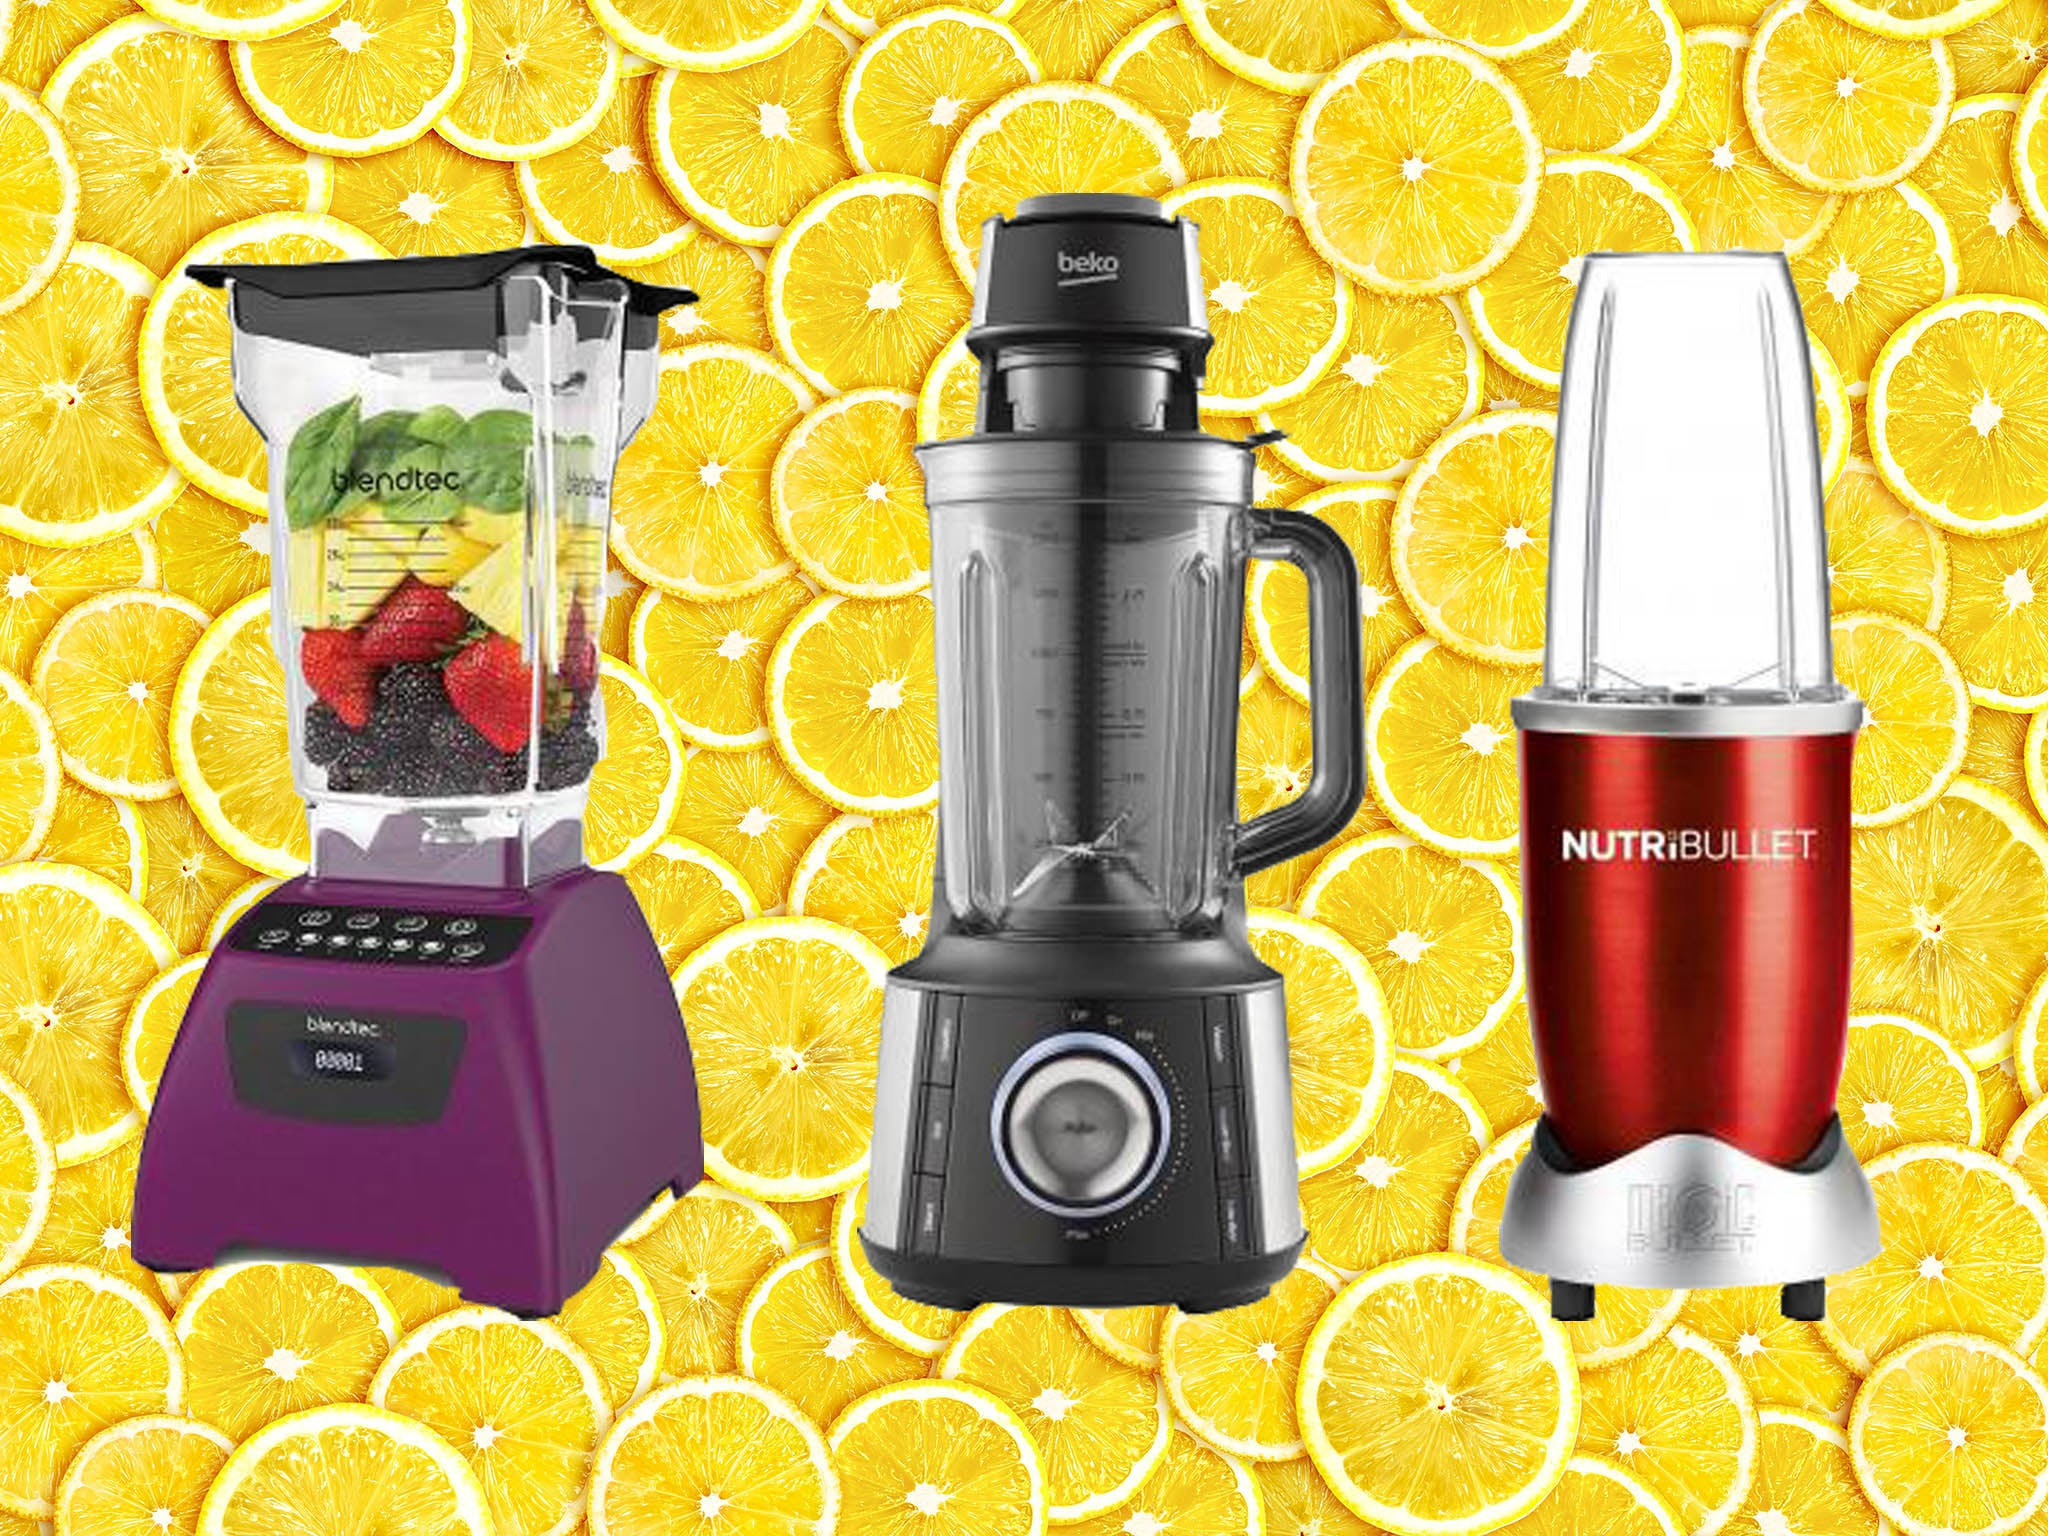 Best jug blenders for smoothies, soups and juices